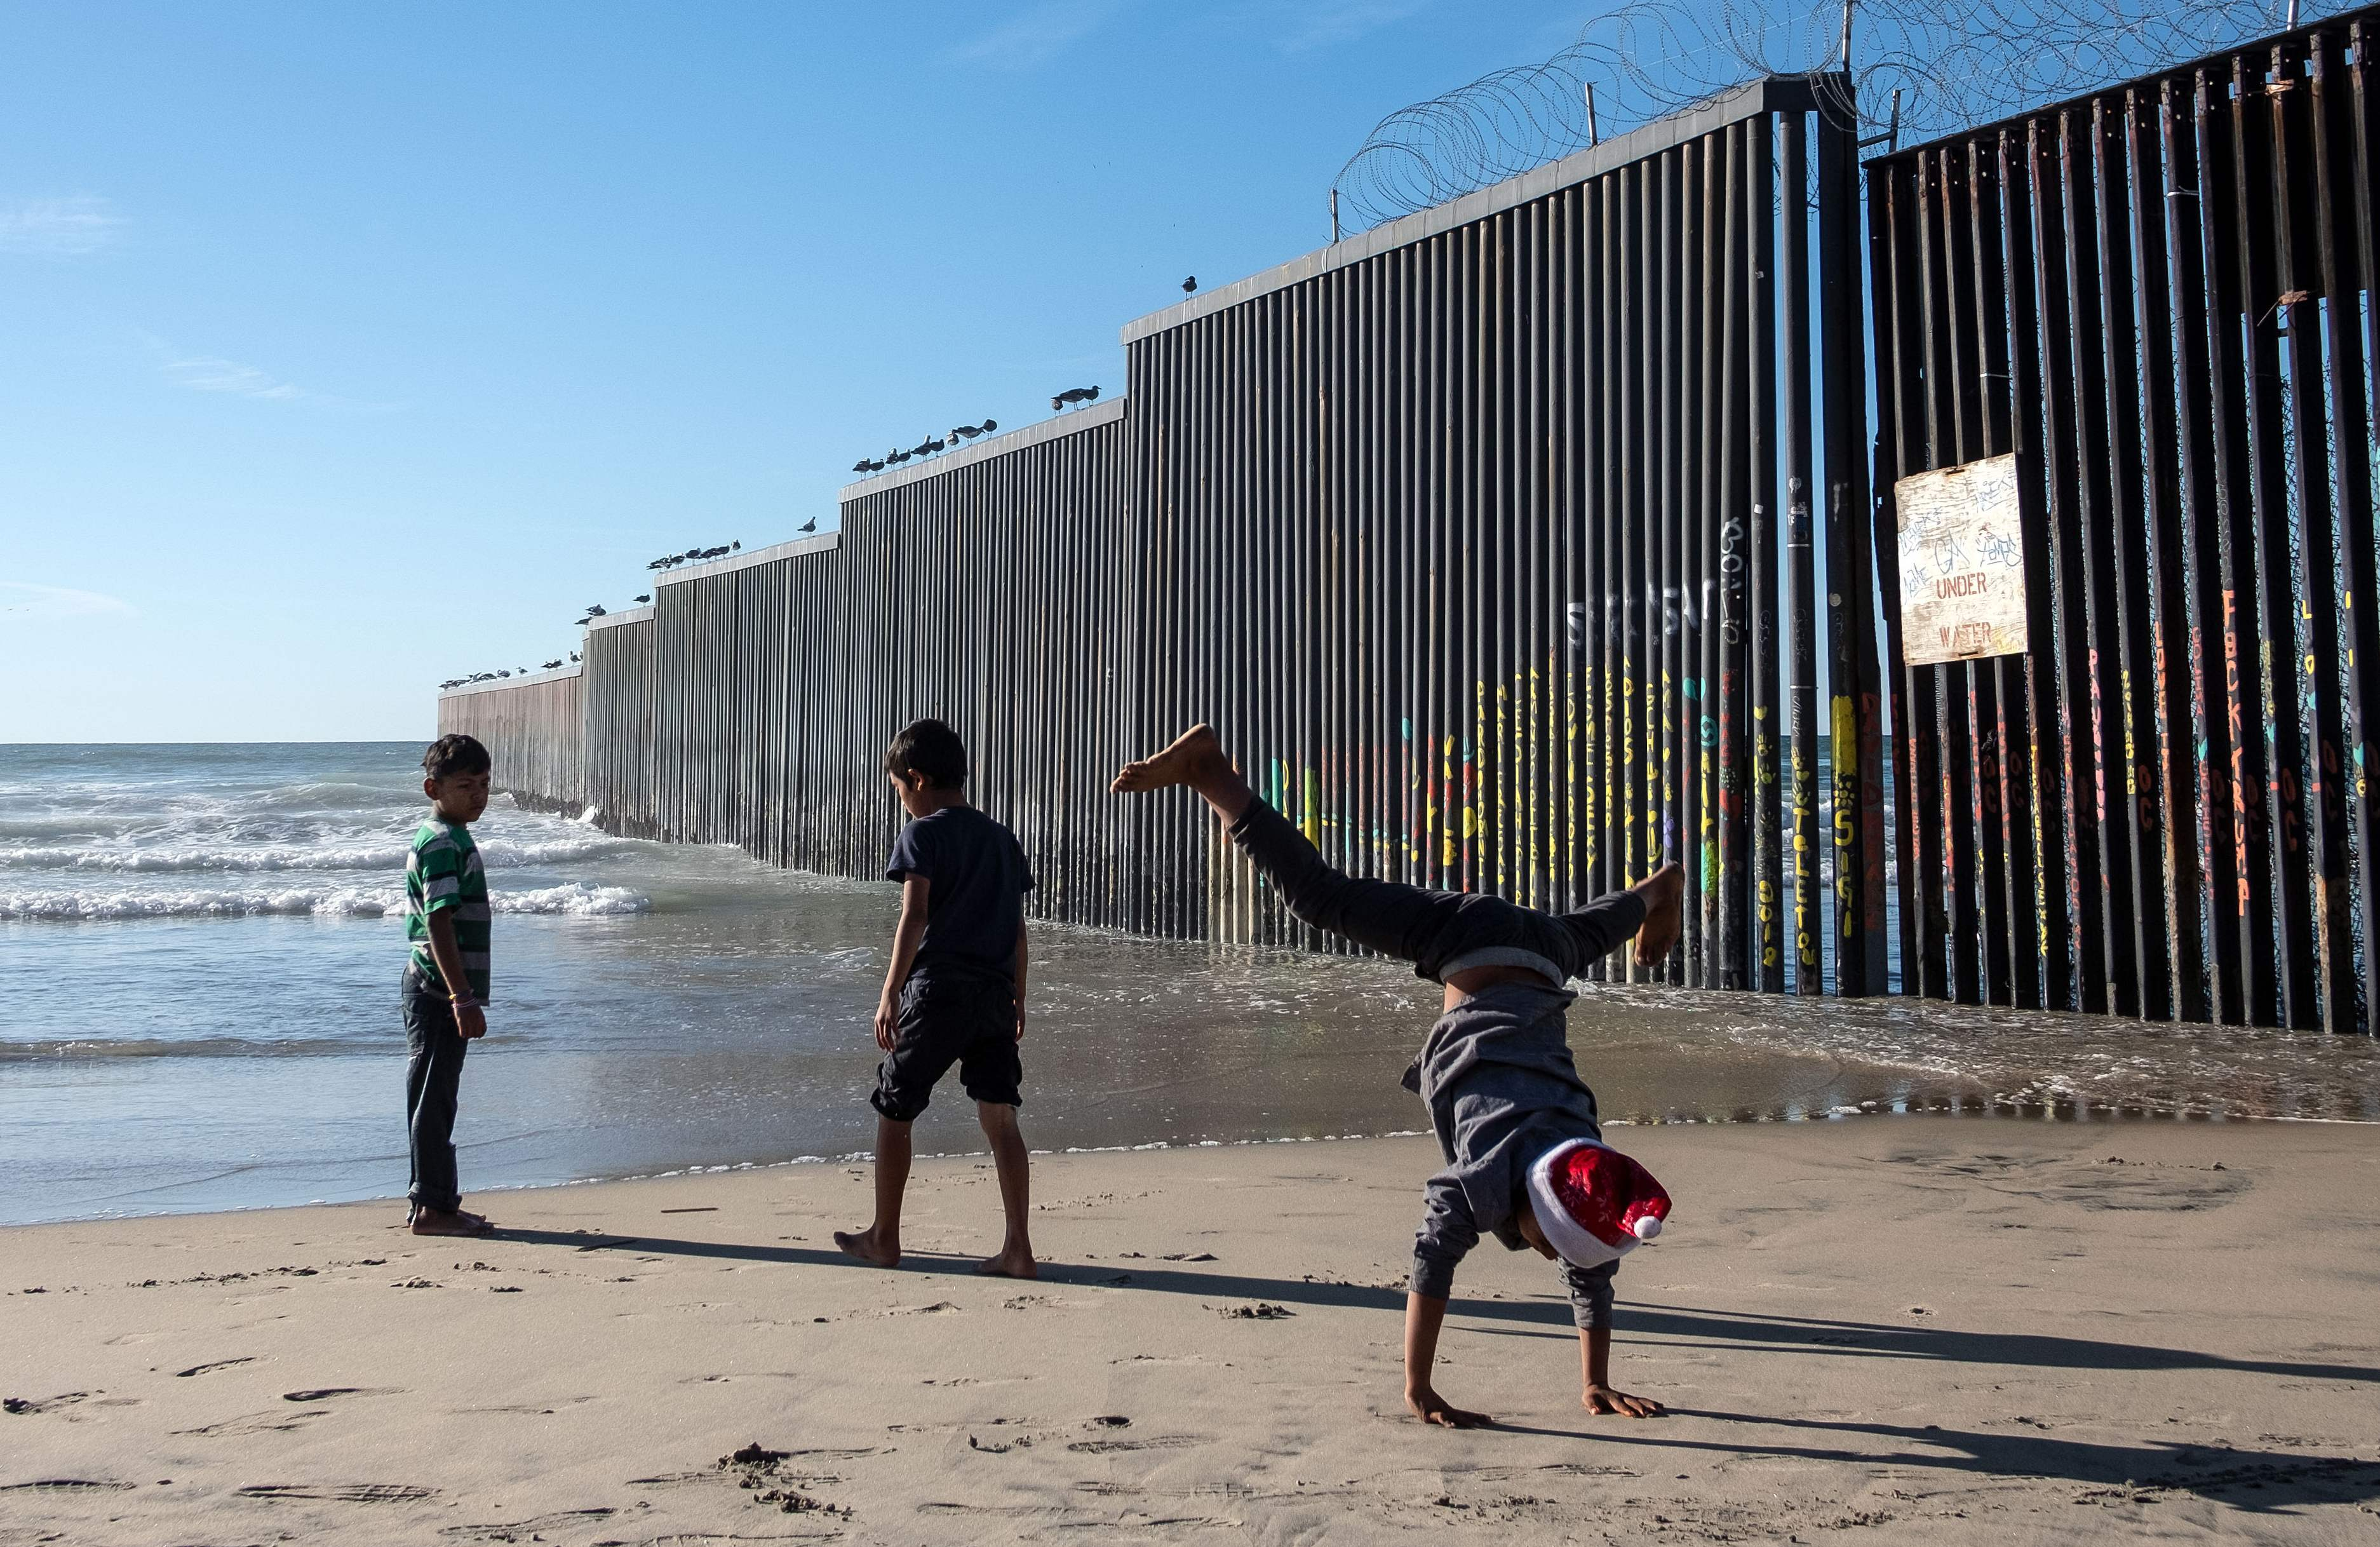 Children traveling with the Central American migrants that hope to reach the United States, play at the beach next to the U.S.-Mexico border fence in Playas de Tijuana, Baja California State, Mexico, on Dec. 29, 2018.